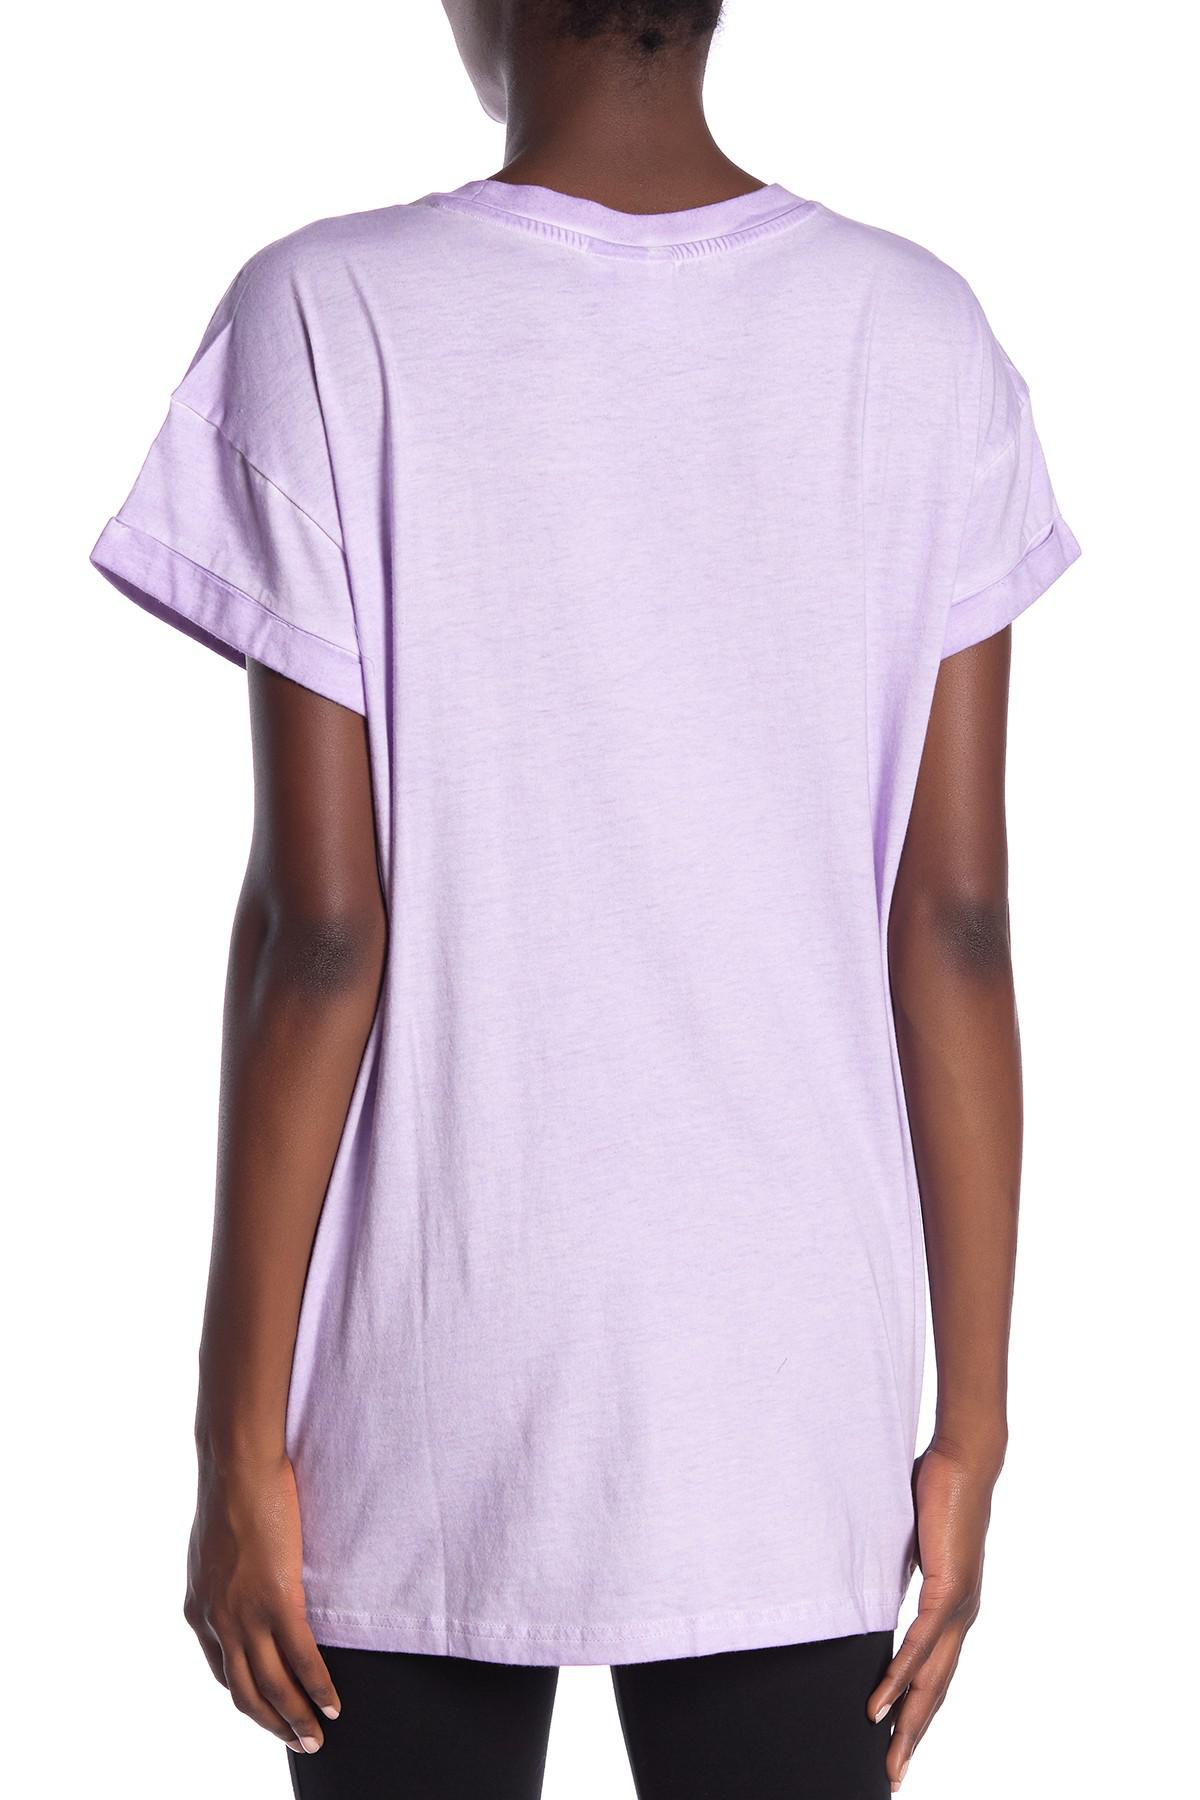 a77b6e085c7 Lyst - adidas Loose Boyfriend Tee in Purple